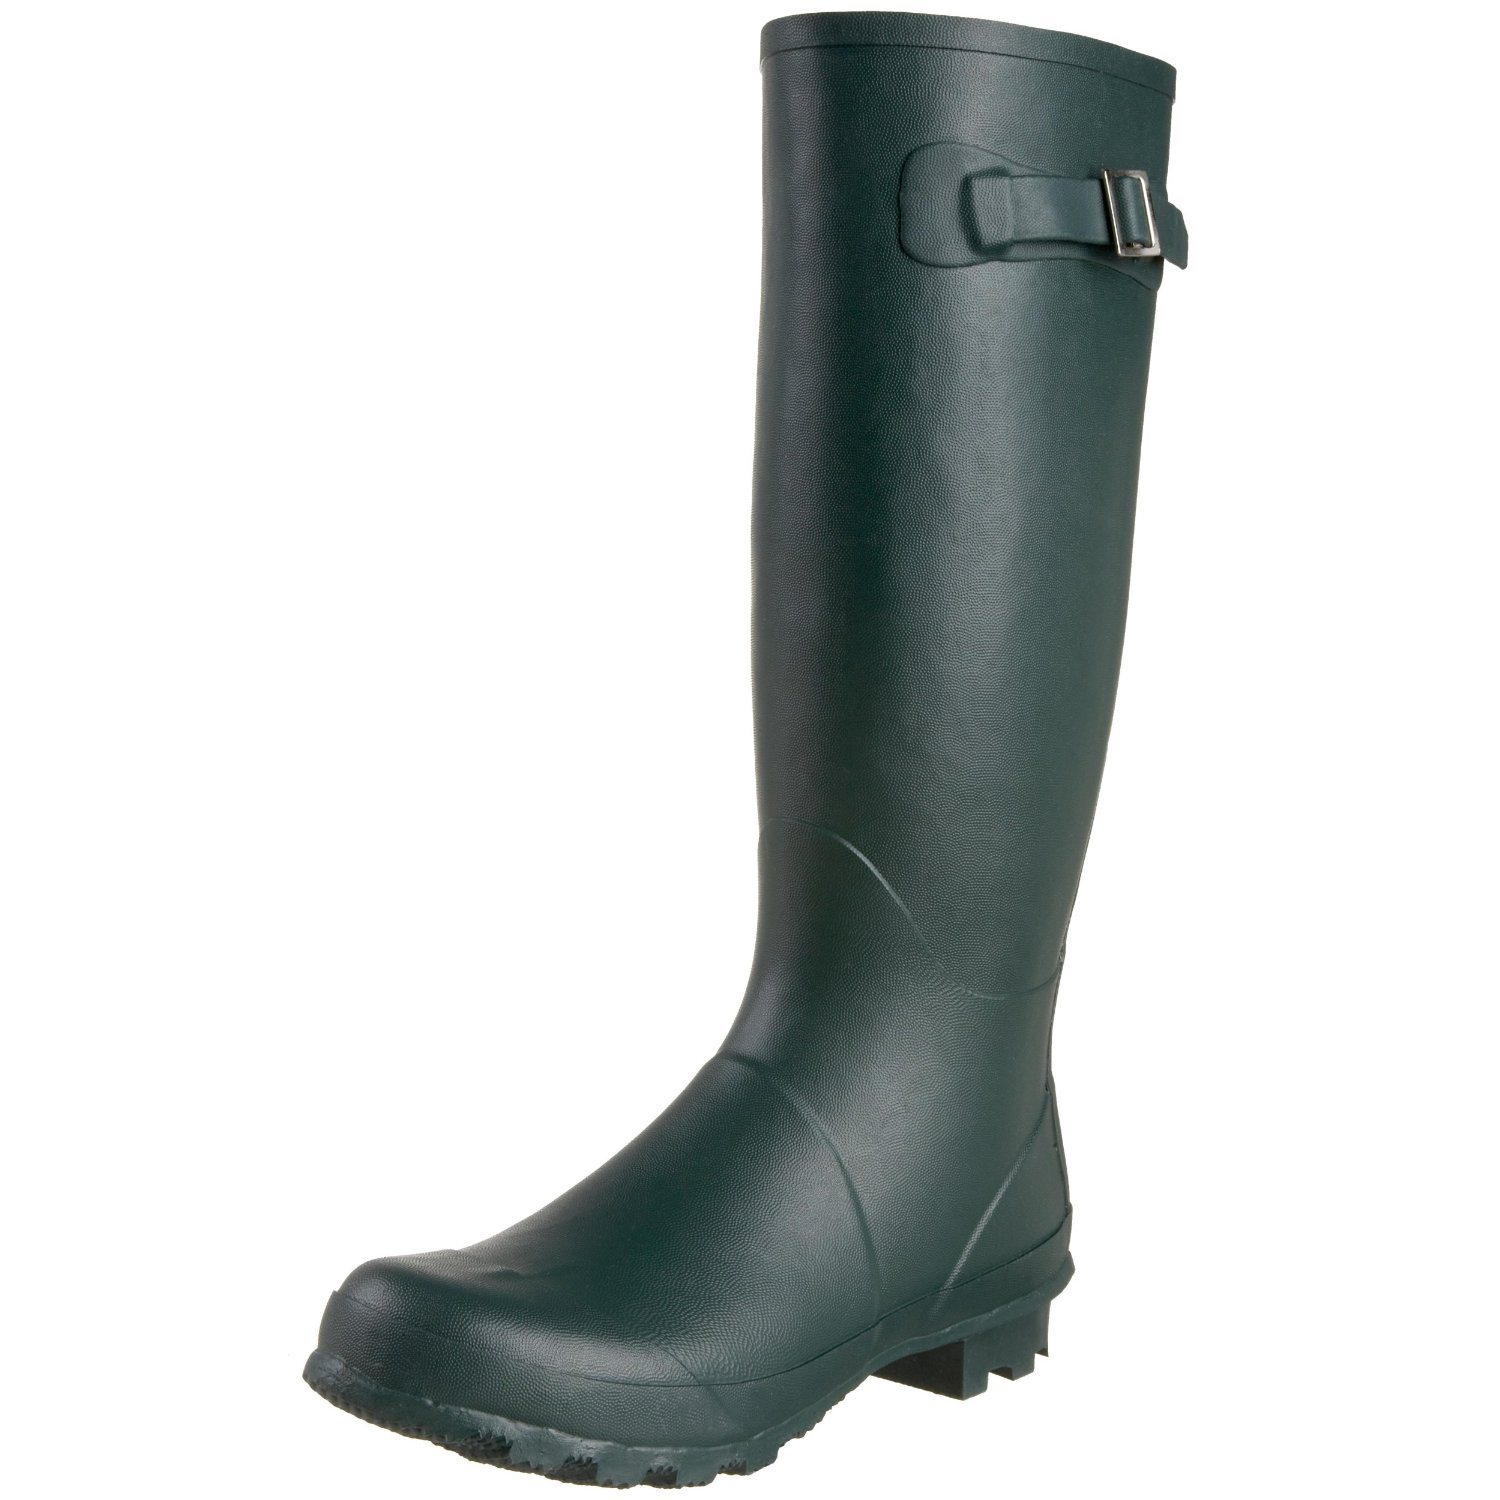 Nomad Forest Green Hurricane Rubber Galoshes Womens Rain ...